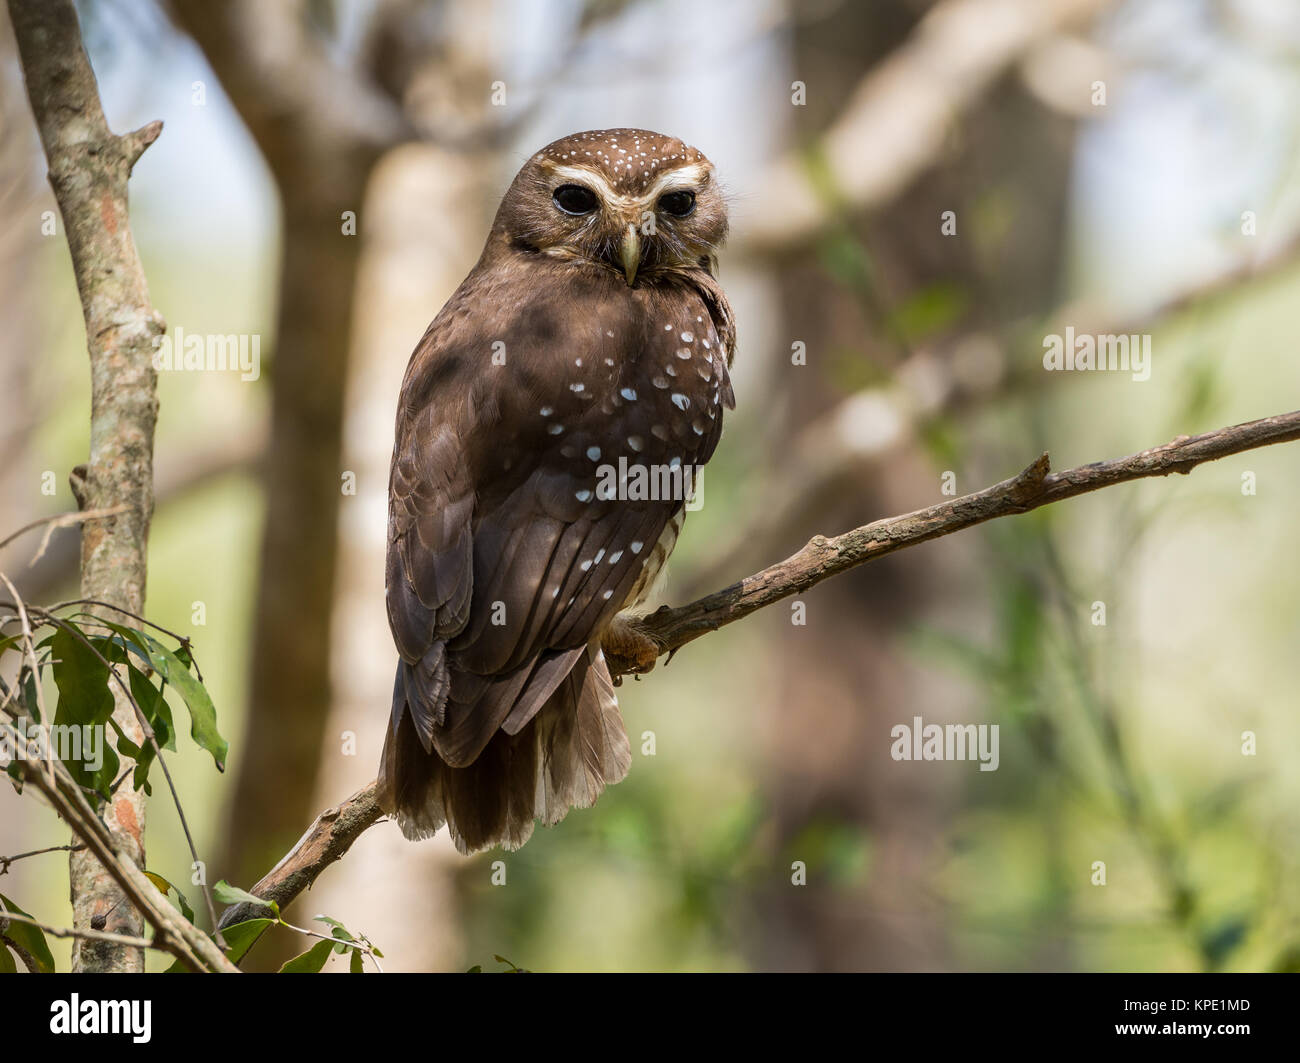 A White-browed Owl (Athene superciliaris) perched on a branch in forest. Berenty Private Reserve. Madagascar, Africa. - Stock Image